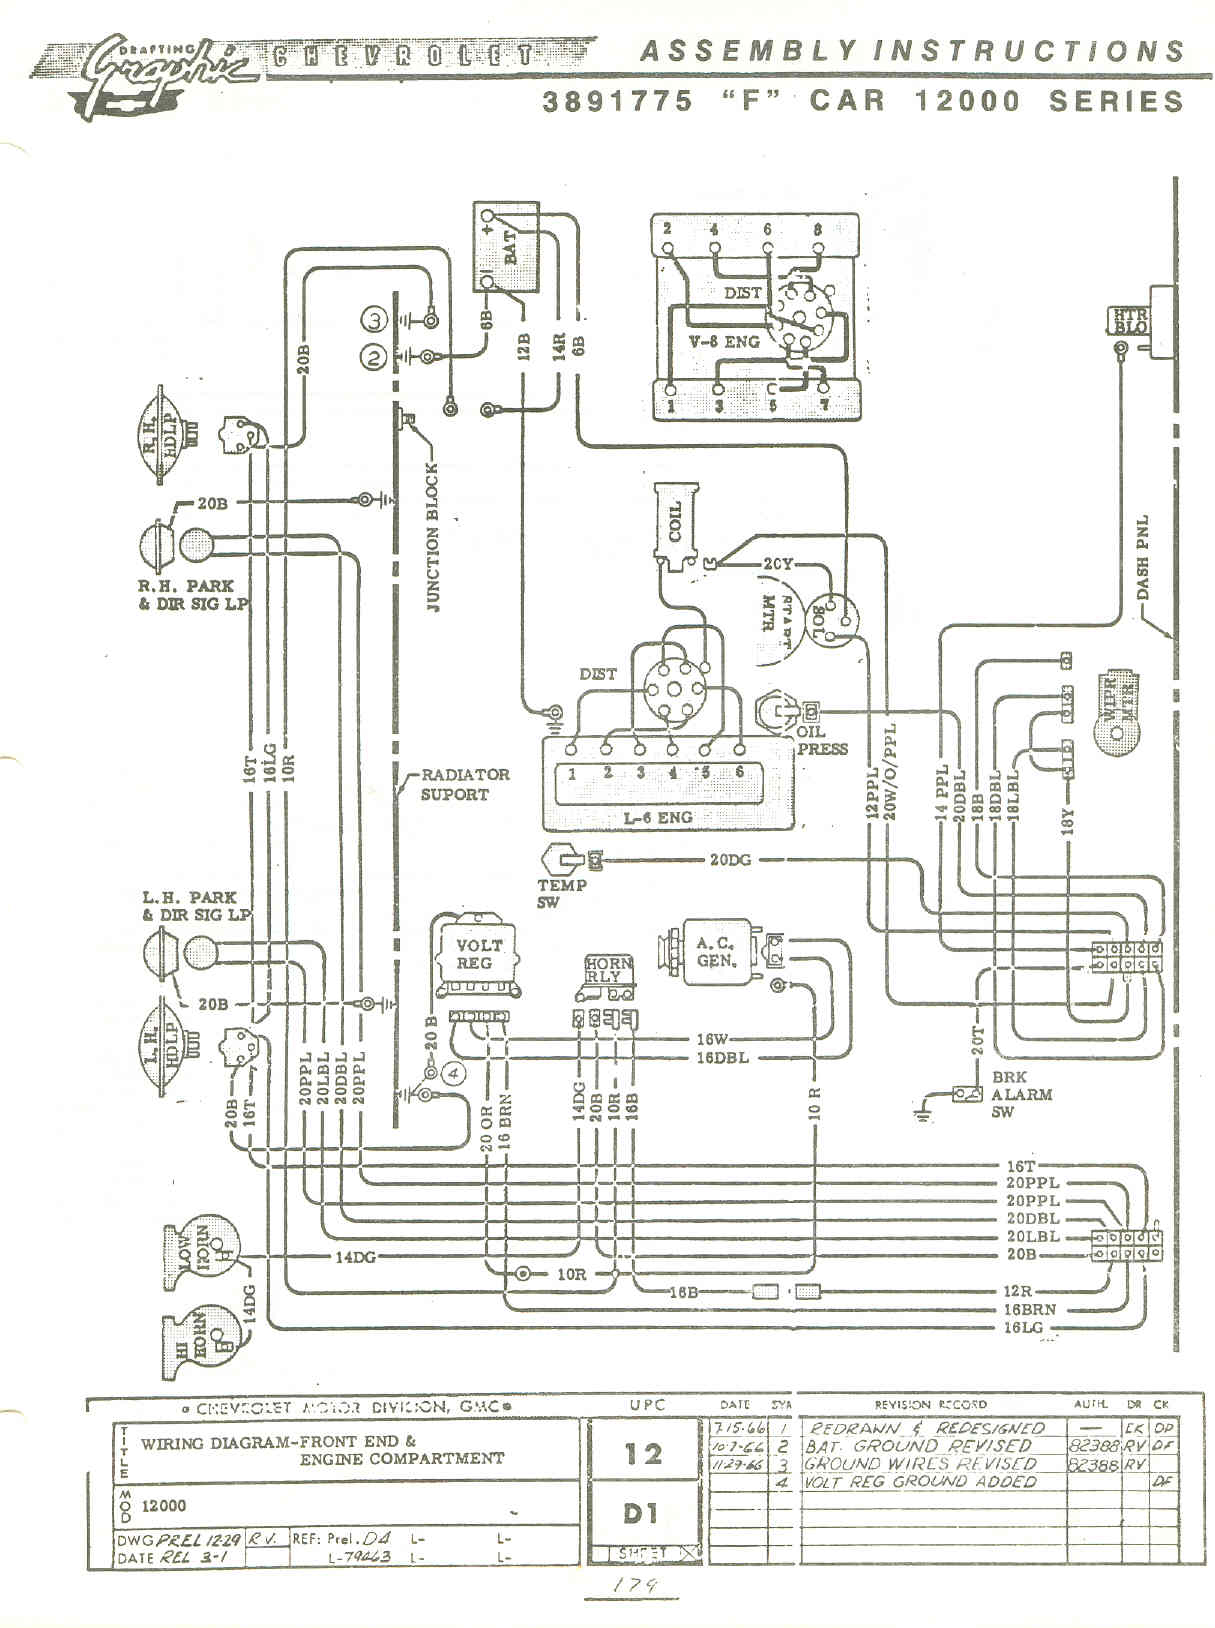 1998 chevy malibu wiring diagram 67 chevelle ignition problem no spark in  on  position page 2  67 chevelle ignition problem no spark